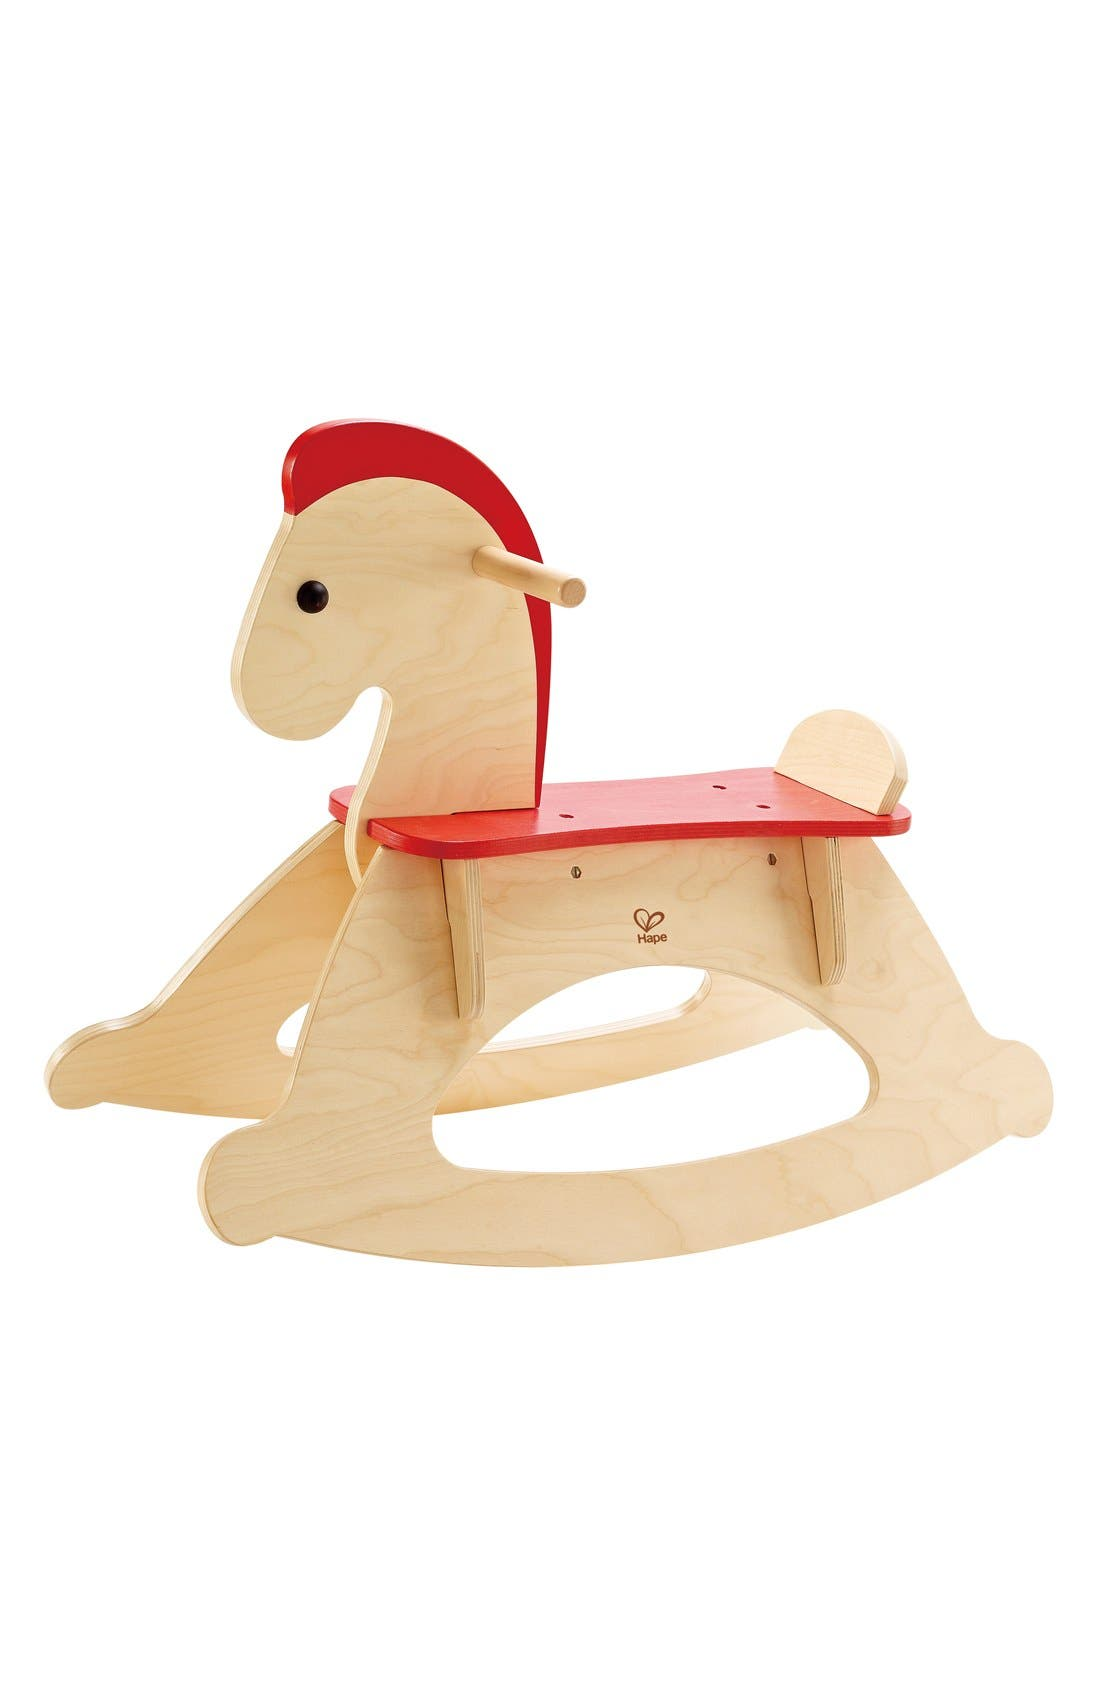 Hape 'Rock and Ride' Rocking Horse